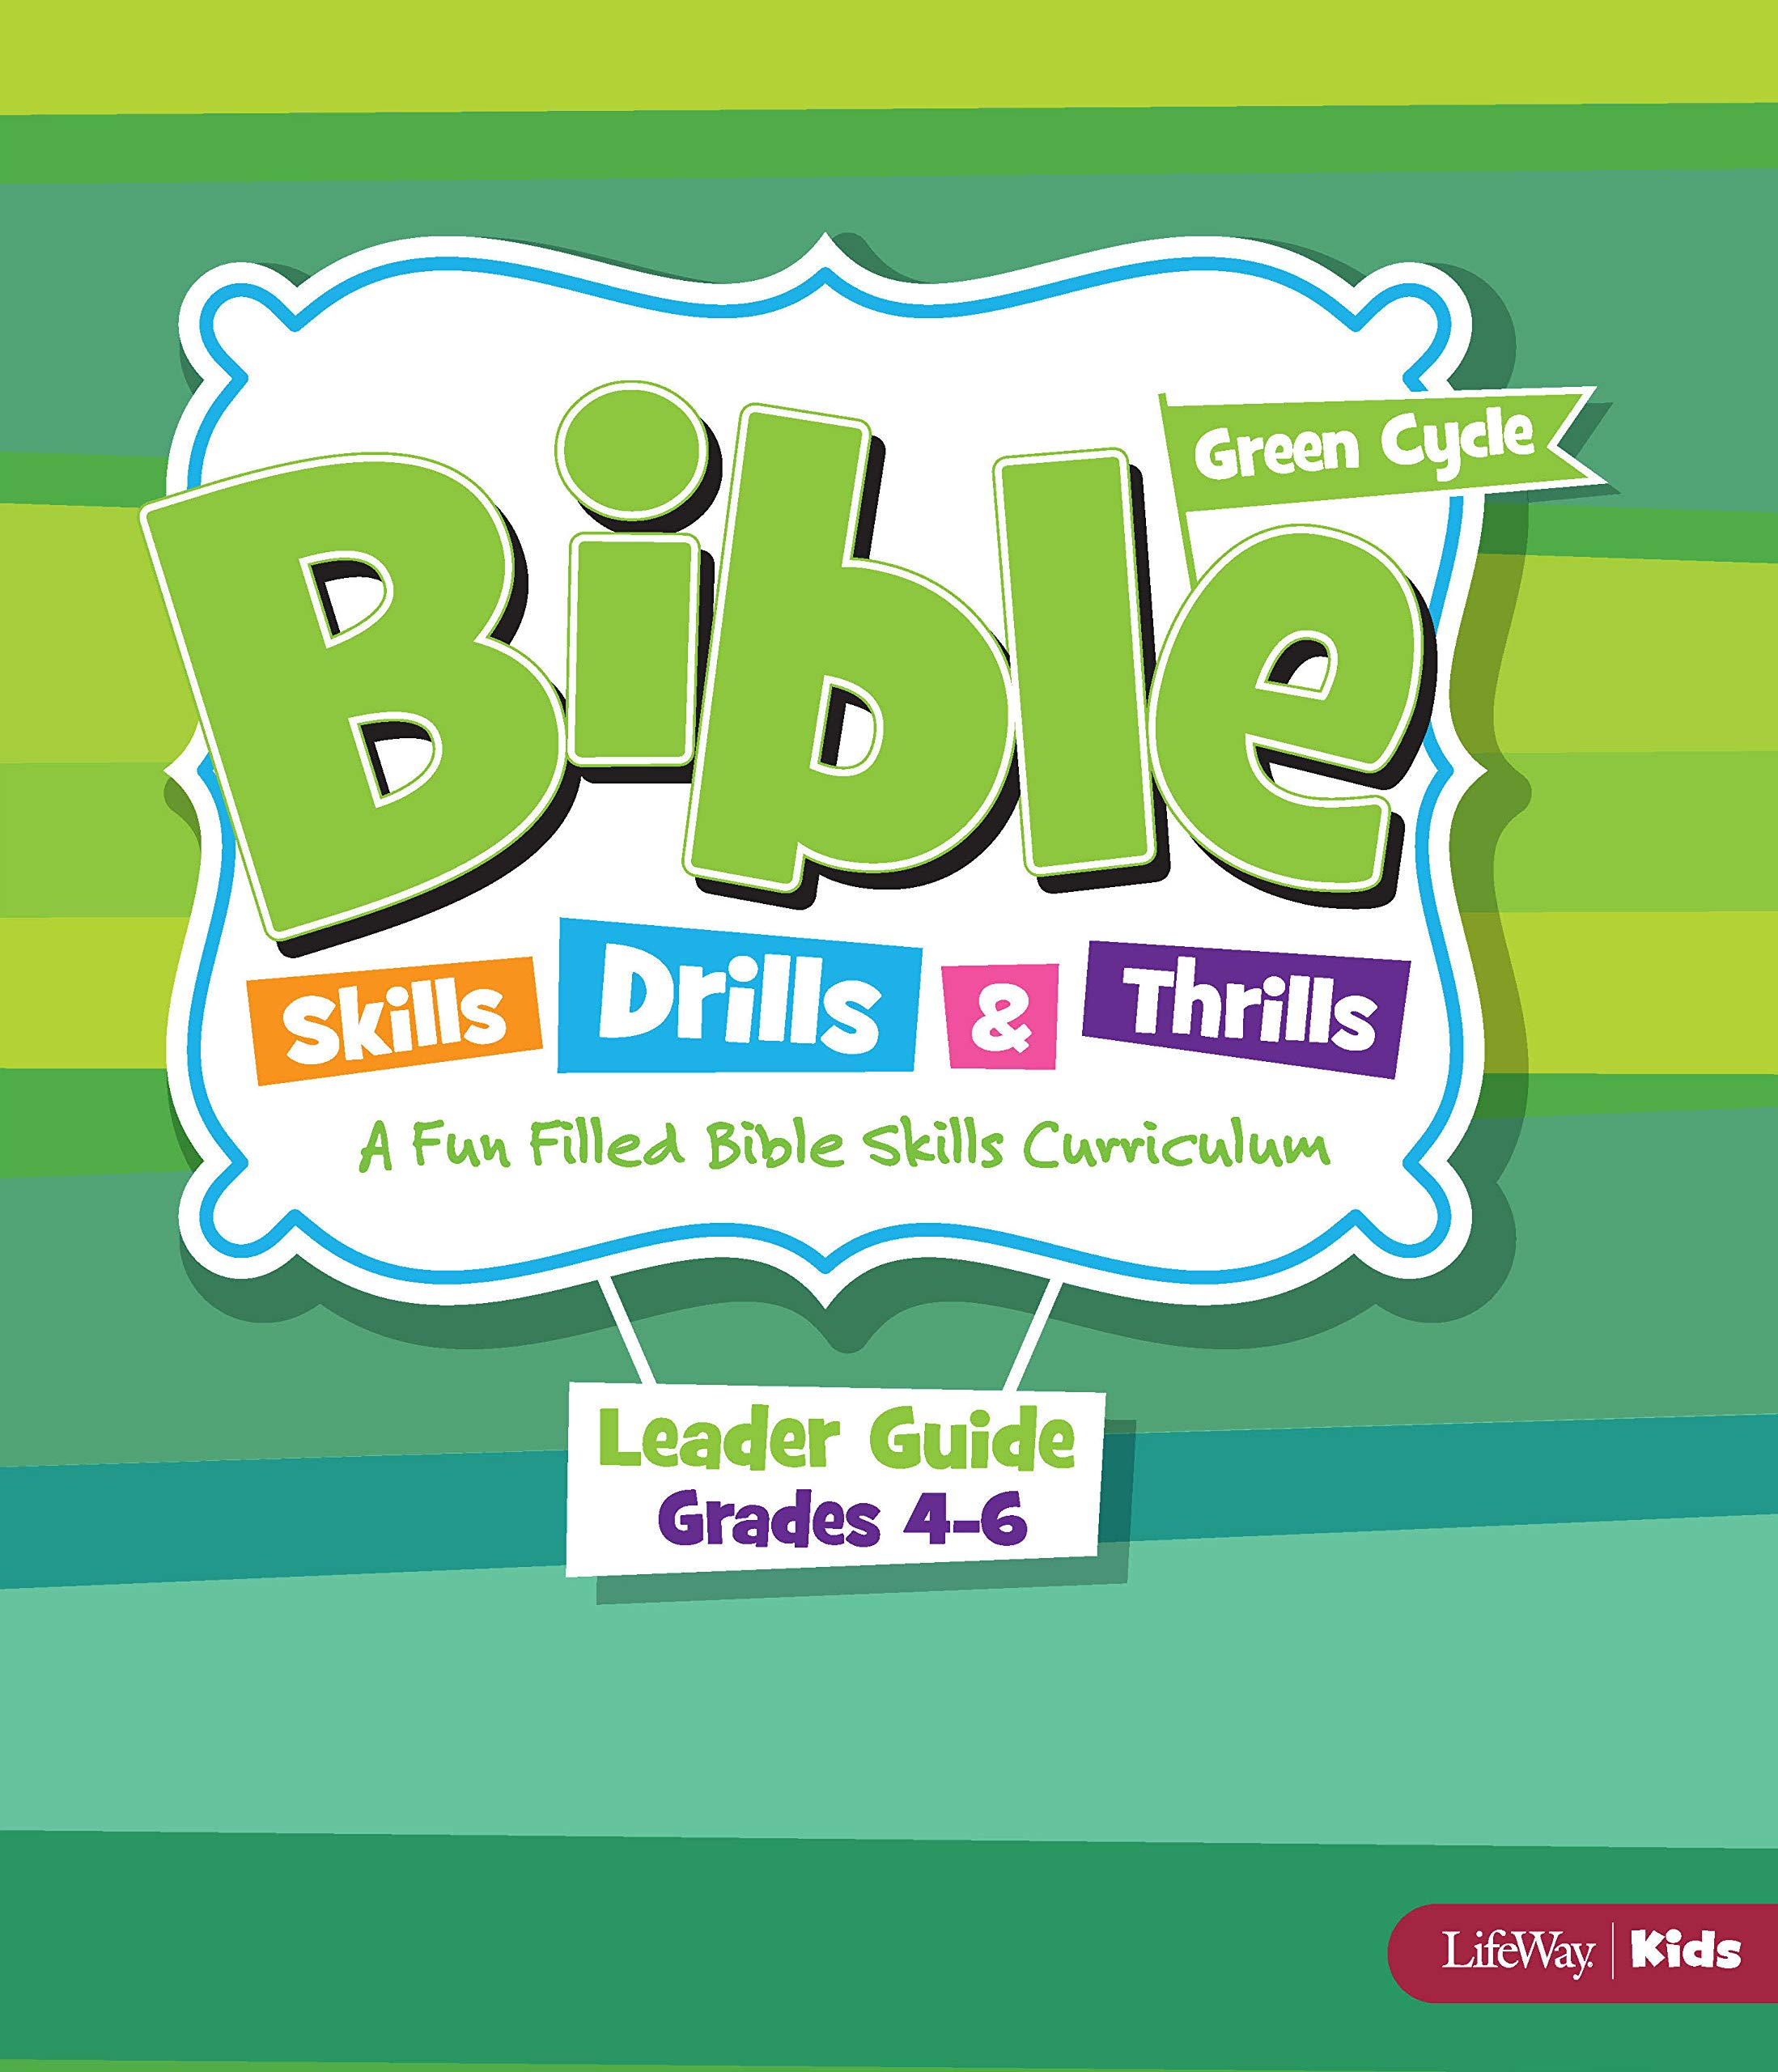 Bible Skills, Drills, & Thrills: Green Cycle (Grades 4-6) - Leader Kit by LifeWay Press